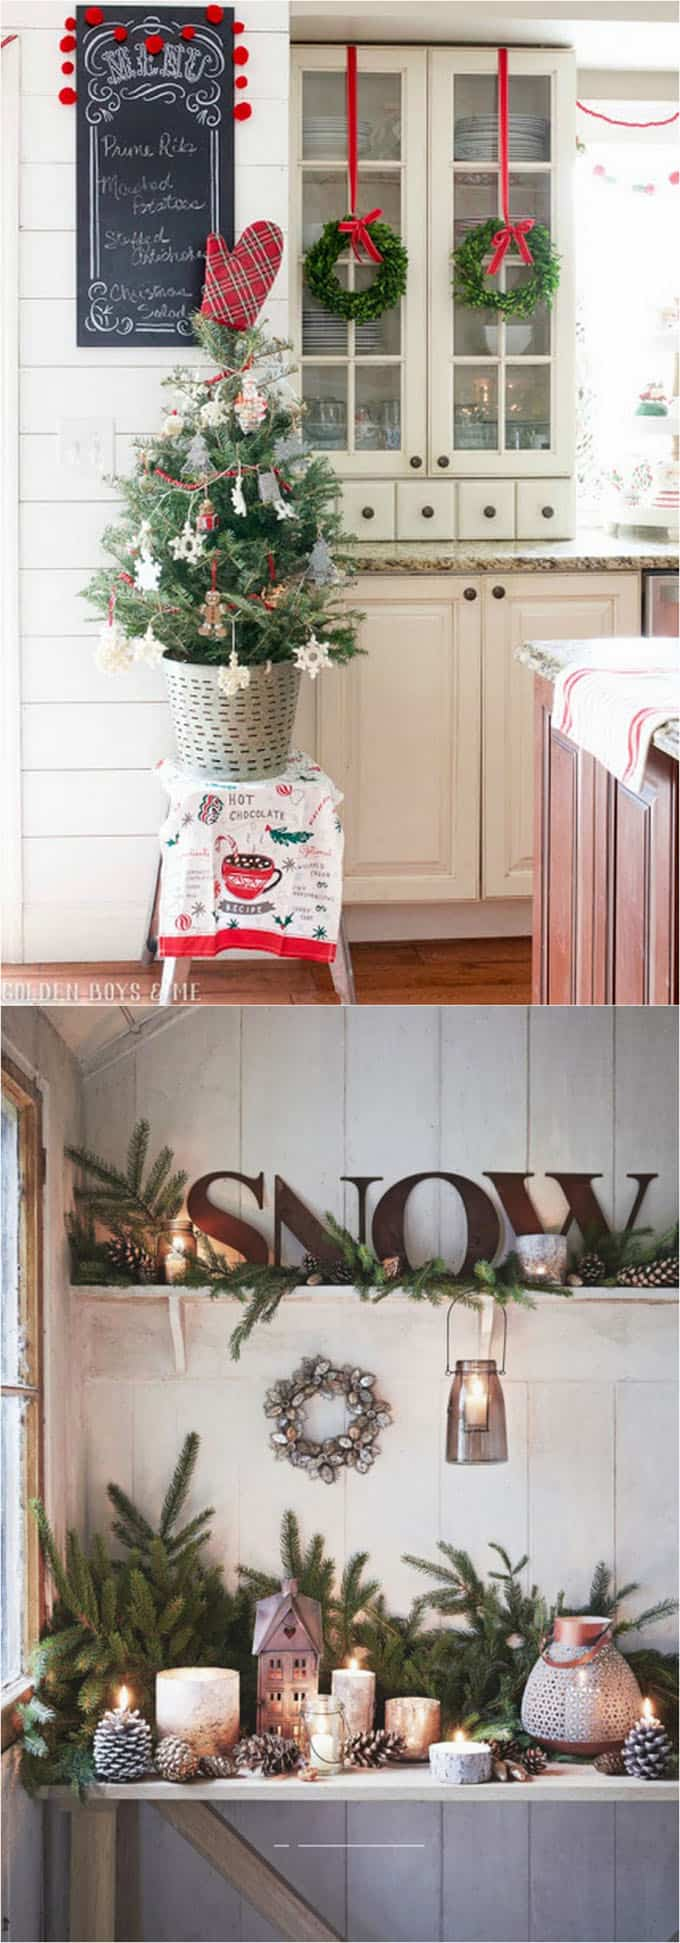 How to decorate kitchen cabinets and shelves for Christmas. & 100+ Favorite Christmas Decorating Ideas For Every Room in Your Home ...